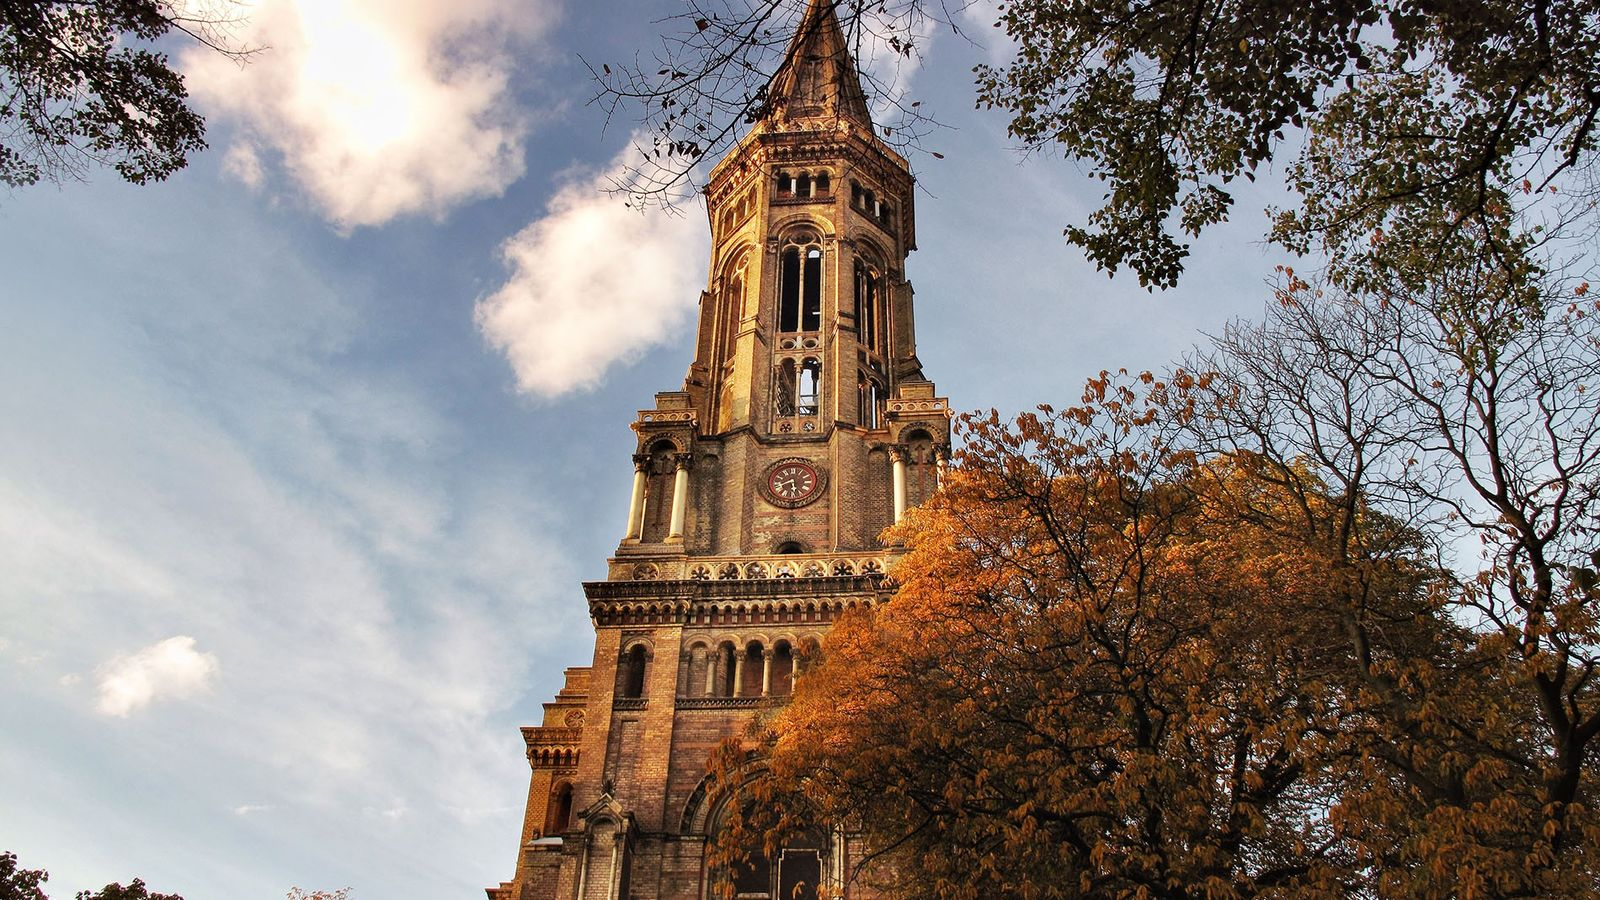 Through a dark brick-and-stone spiral-staircase within, one can reach the top of the Zionskirche and admire ...